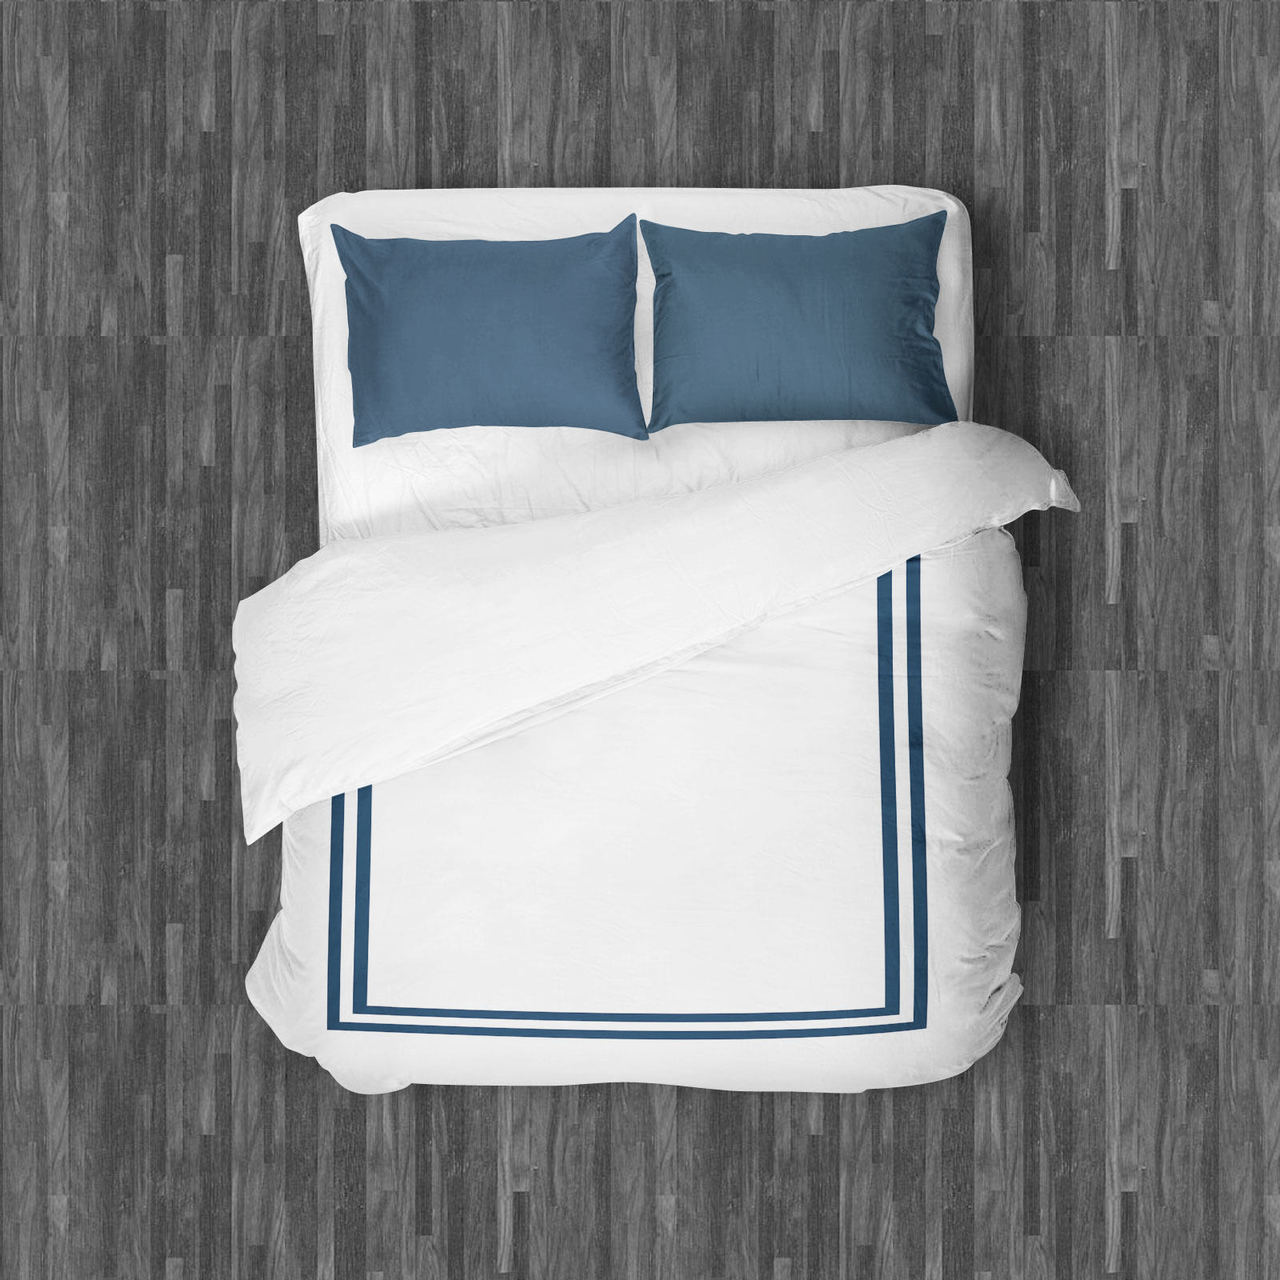 AMALFI DUVET QUEEN NAVY'S BLUE